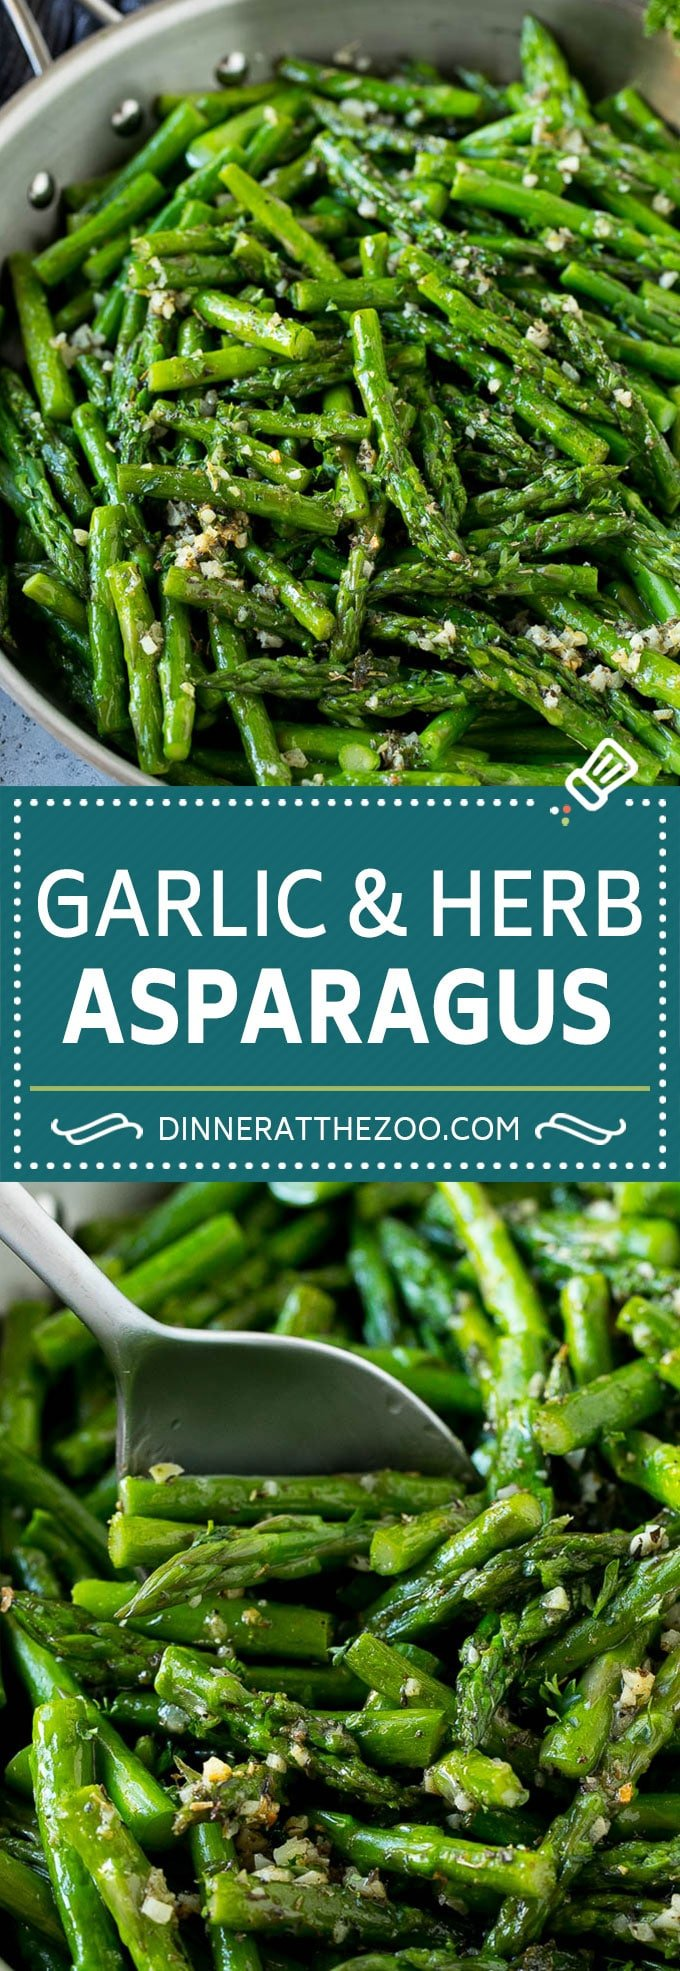 Sauteed Asparagus Recipe | Asparagus Side Dish | Easy Asparagus Recipe #asparagus #garlic #butter #sidedish #glutenfree #keto #lowcarb #dinner #dinneratthezoo